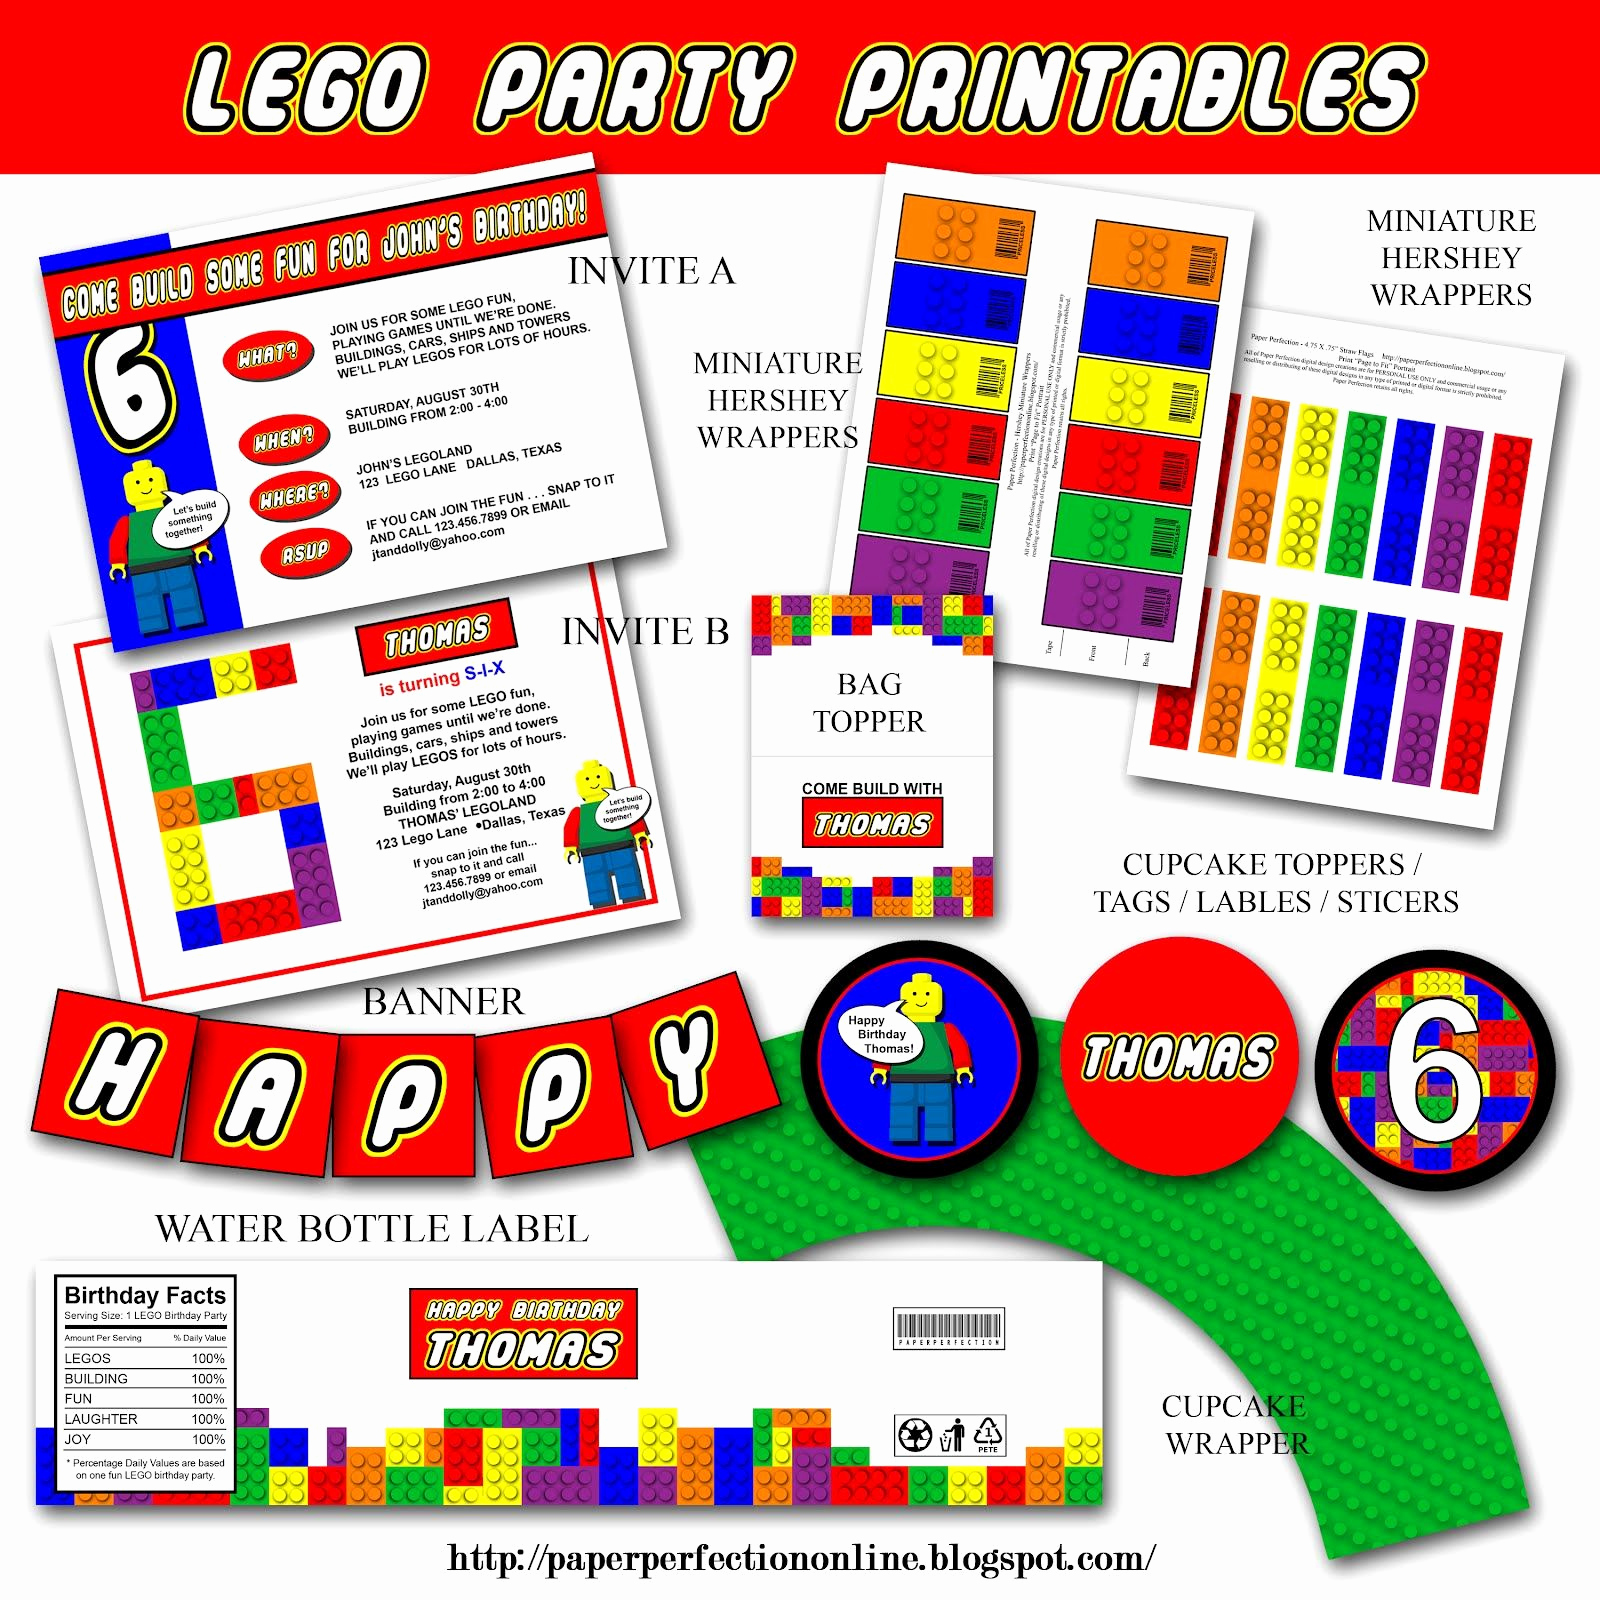 Lego Party Invitation Template New Lego Party Invitations Printable Free Lego